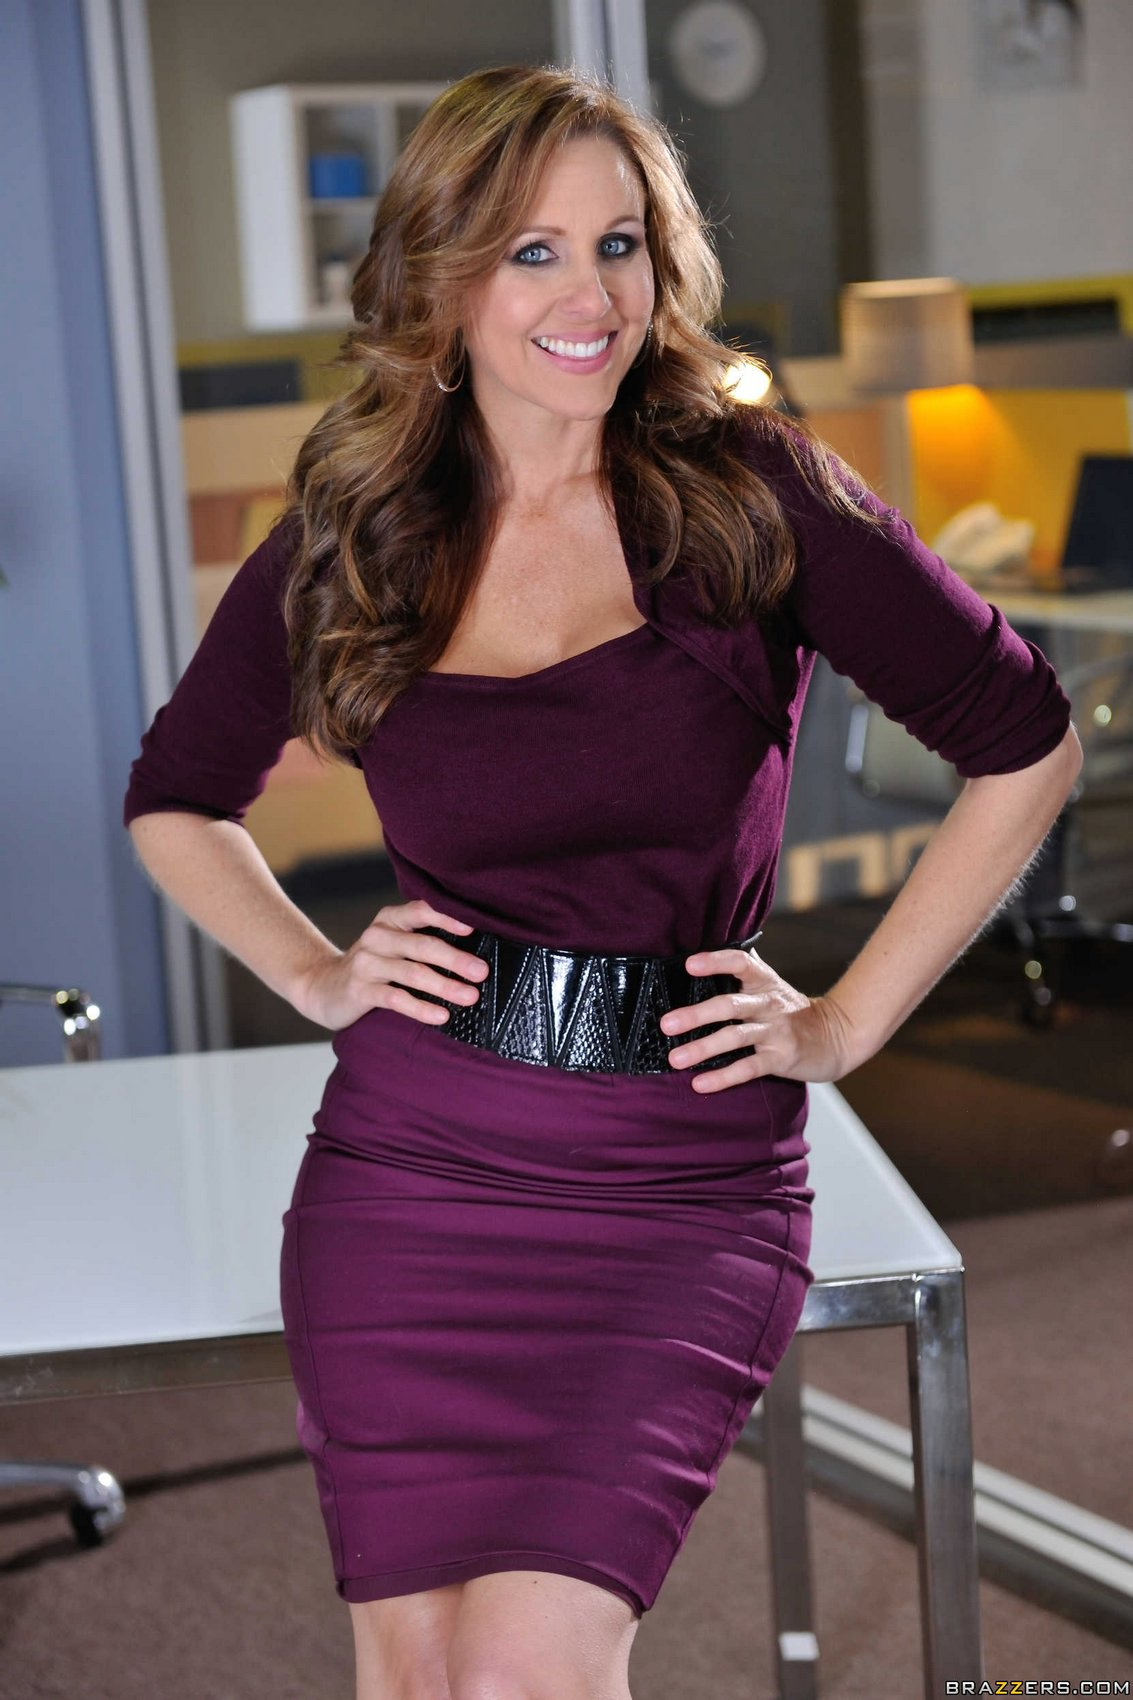 Julia Ann in sexy dress and heels posing in the office